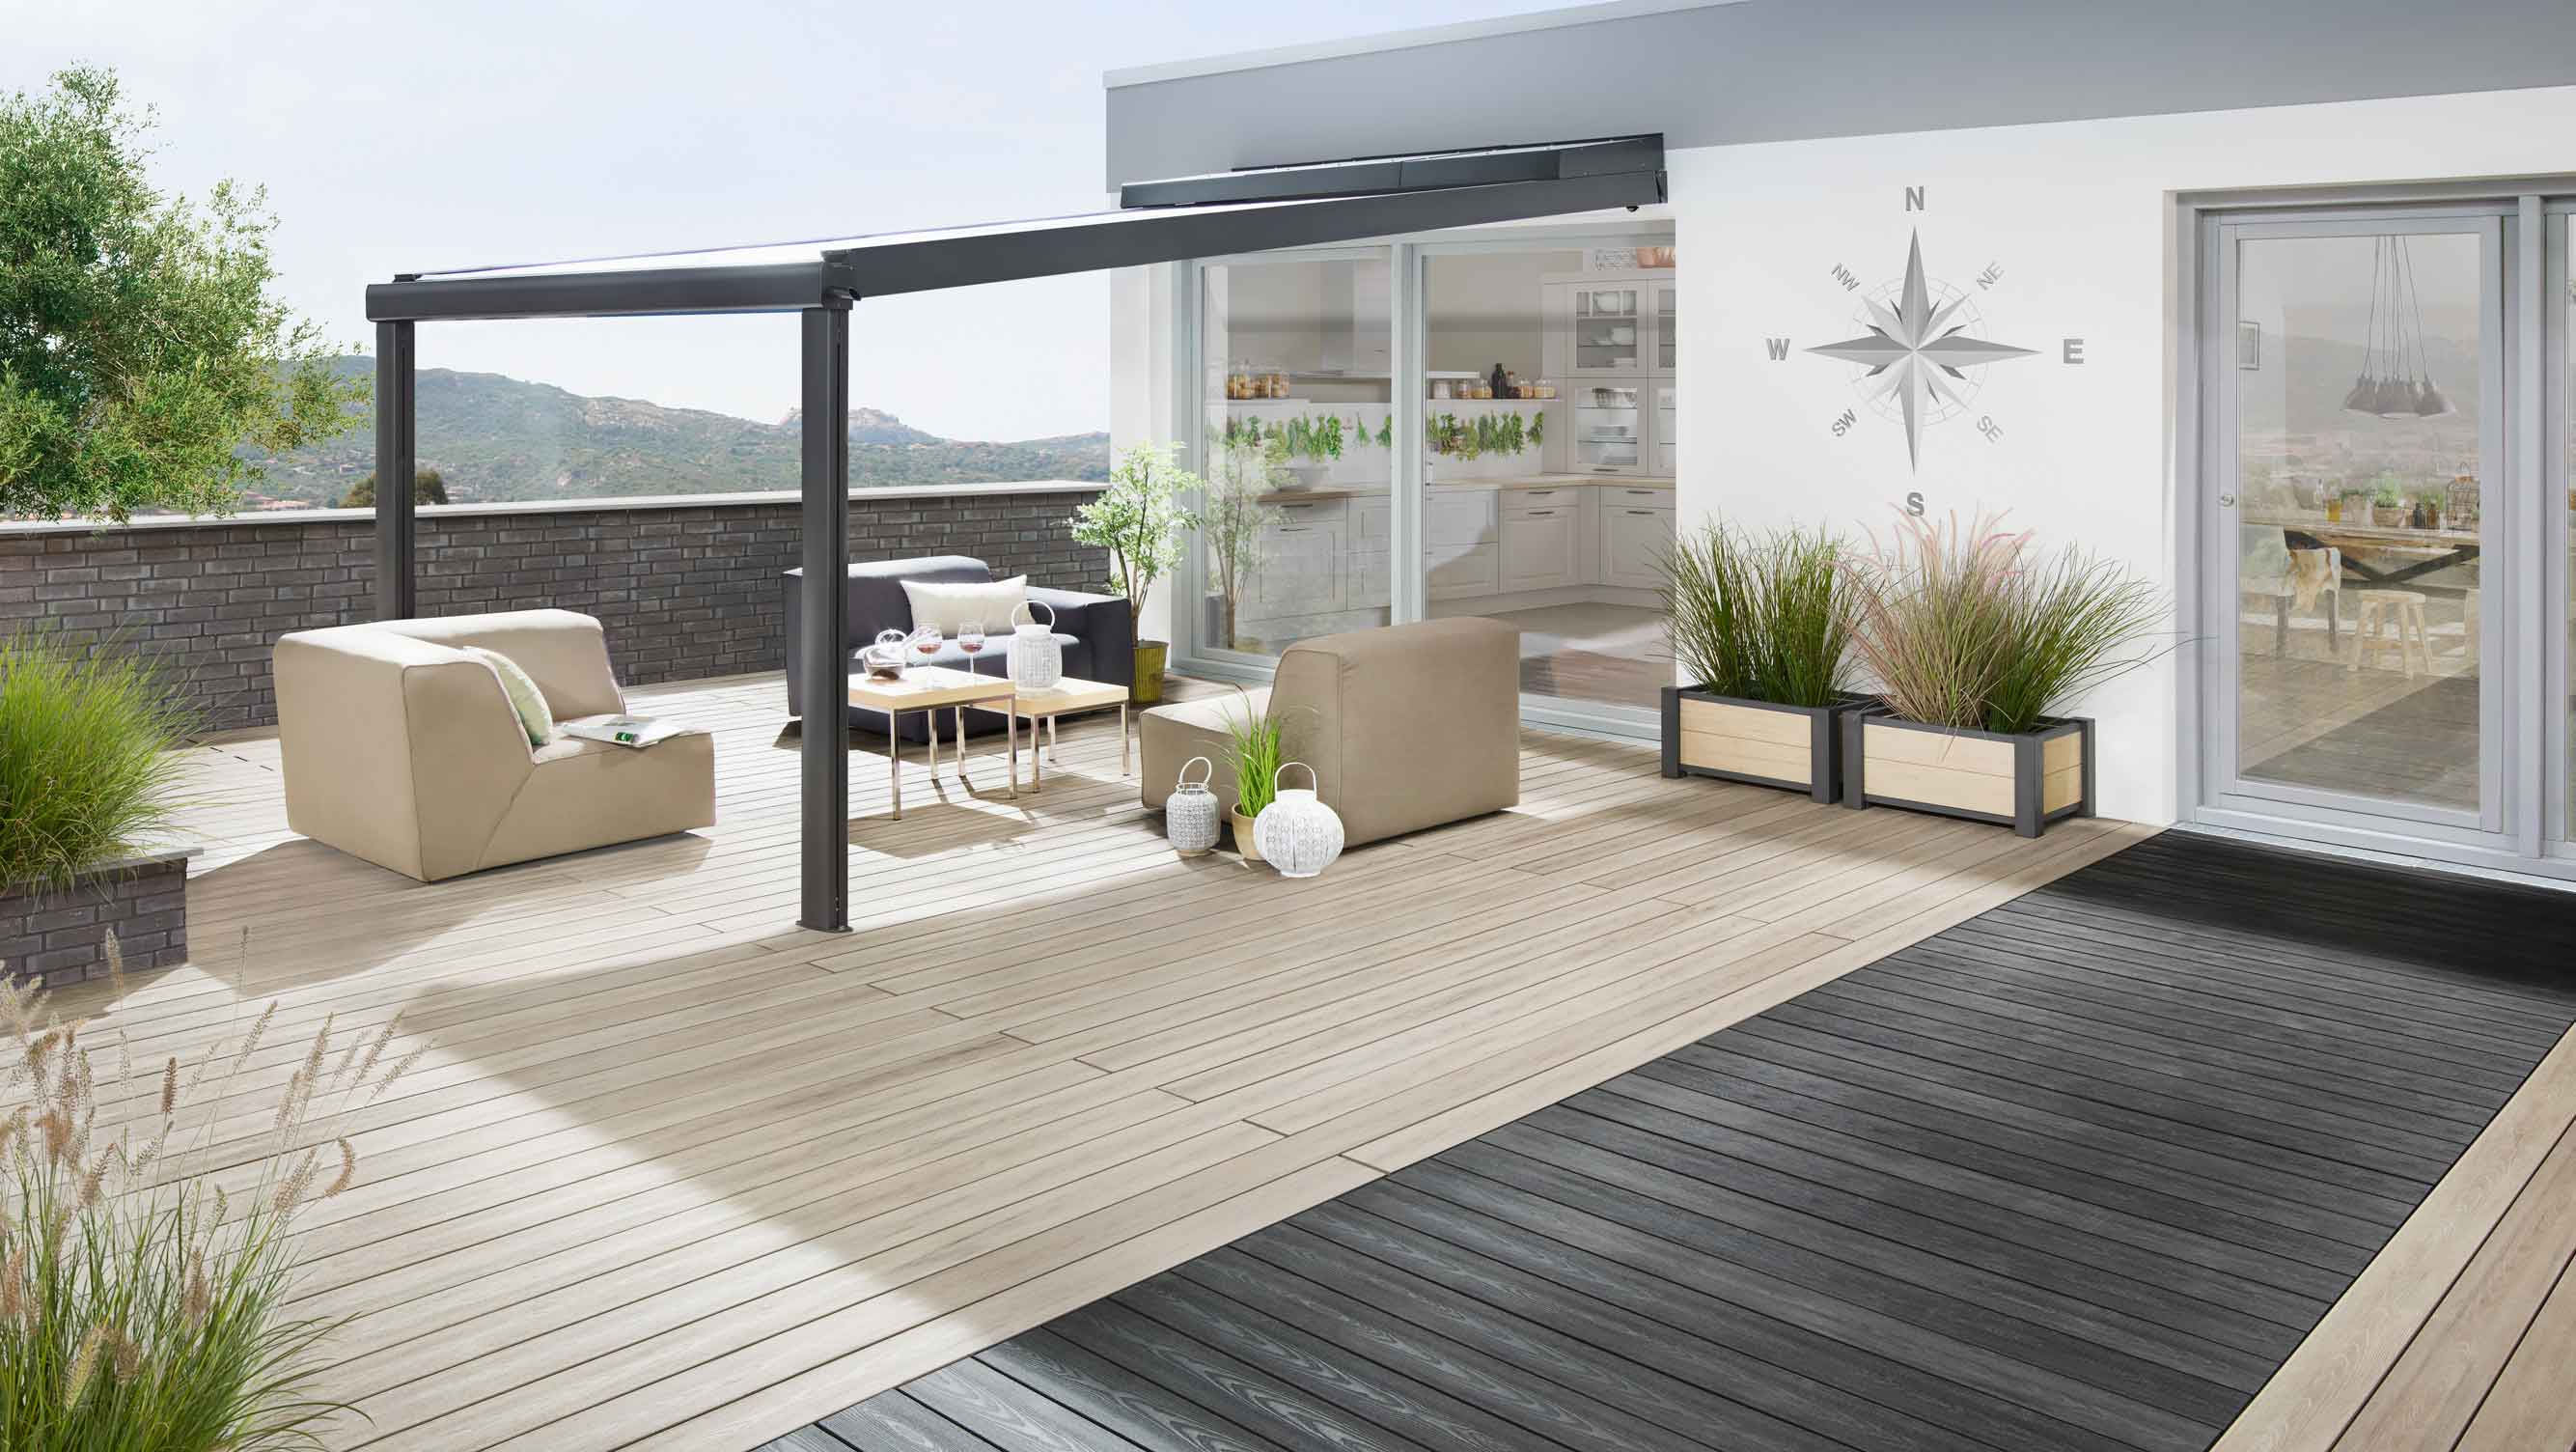 sonnenschutz dachterrasse in 3 schritten zur. Black Bedroom Furniture Sets. Home Design Ideas